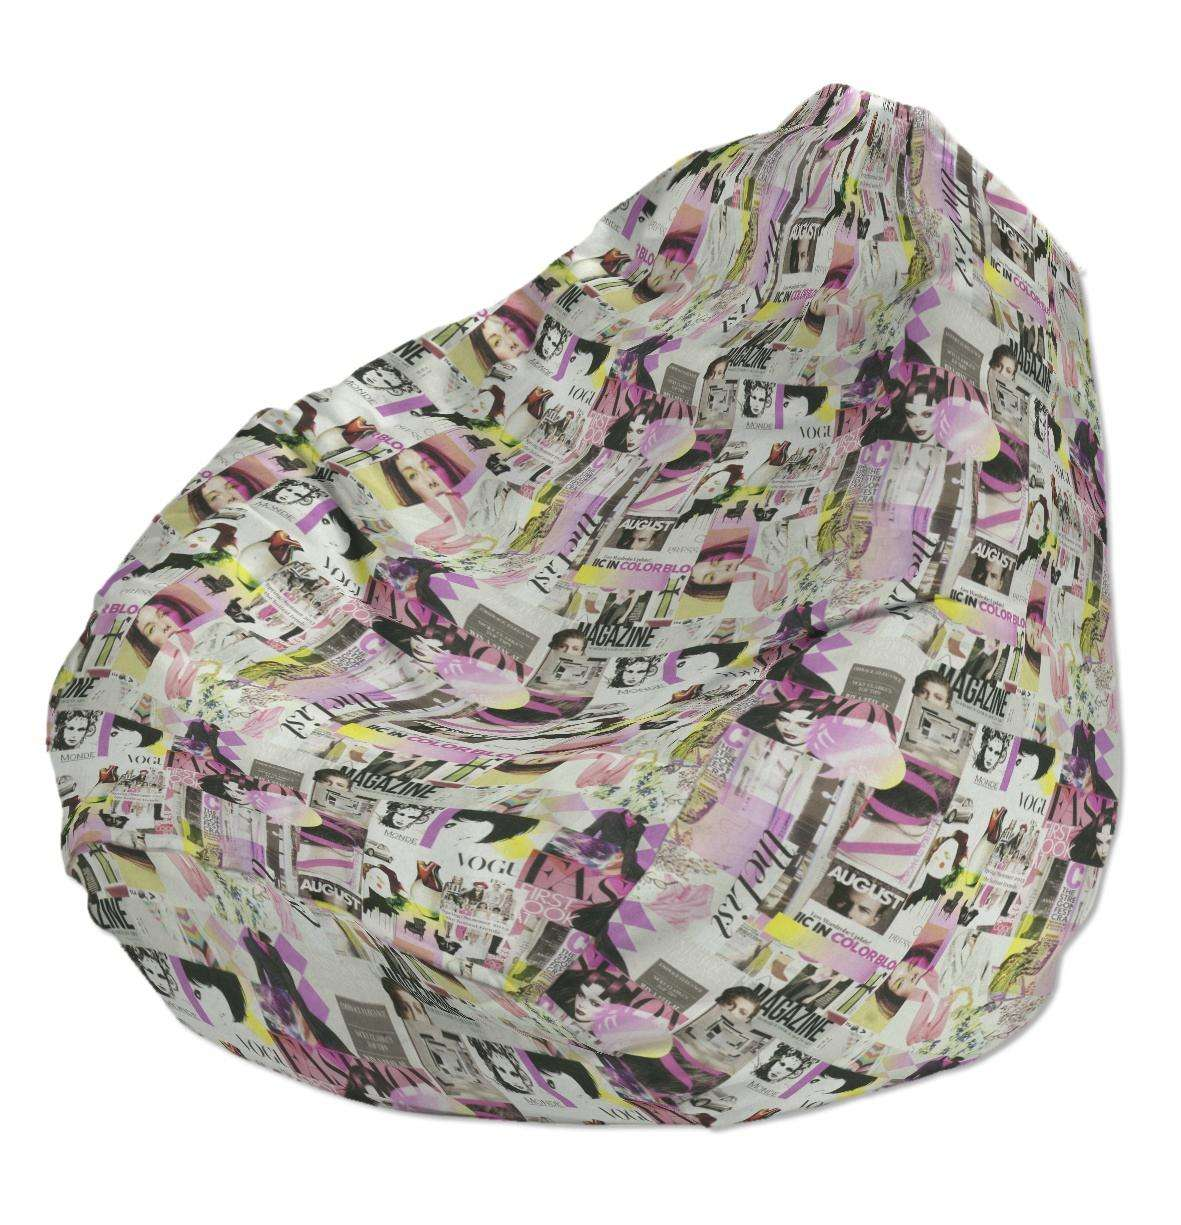 Beanbag Ø50 x 85 cm (20 x 33,5 inch) in collection Freestyle, fabric: 135-15